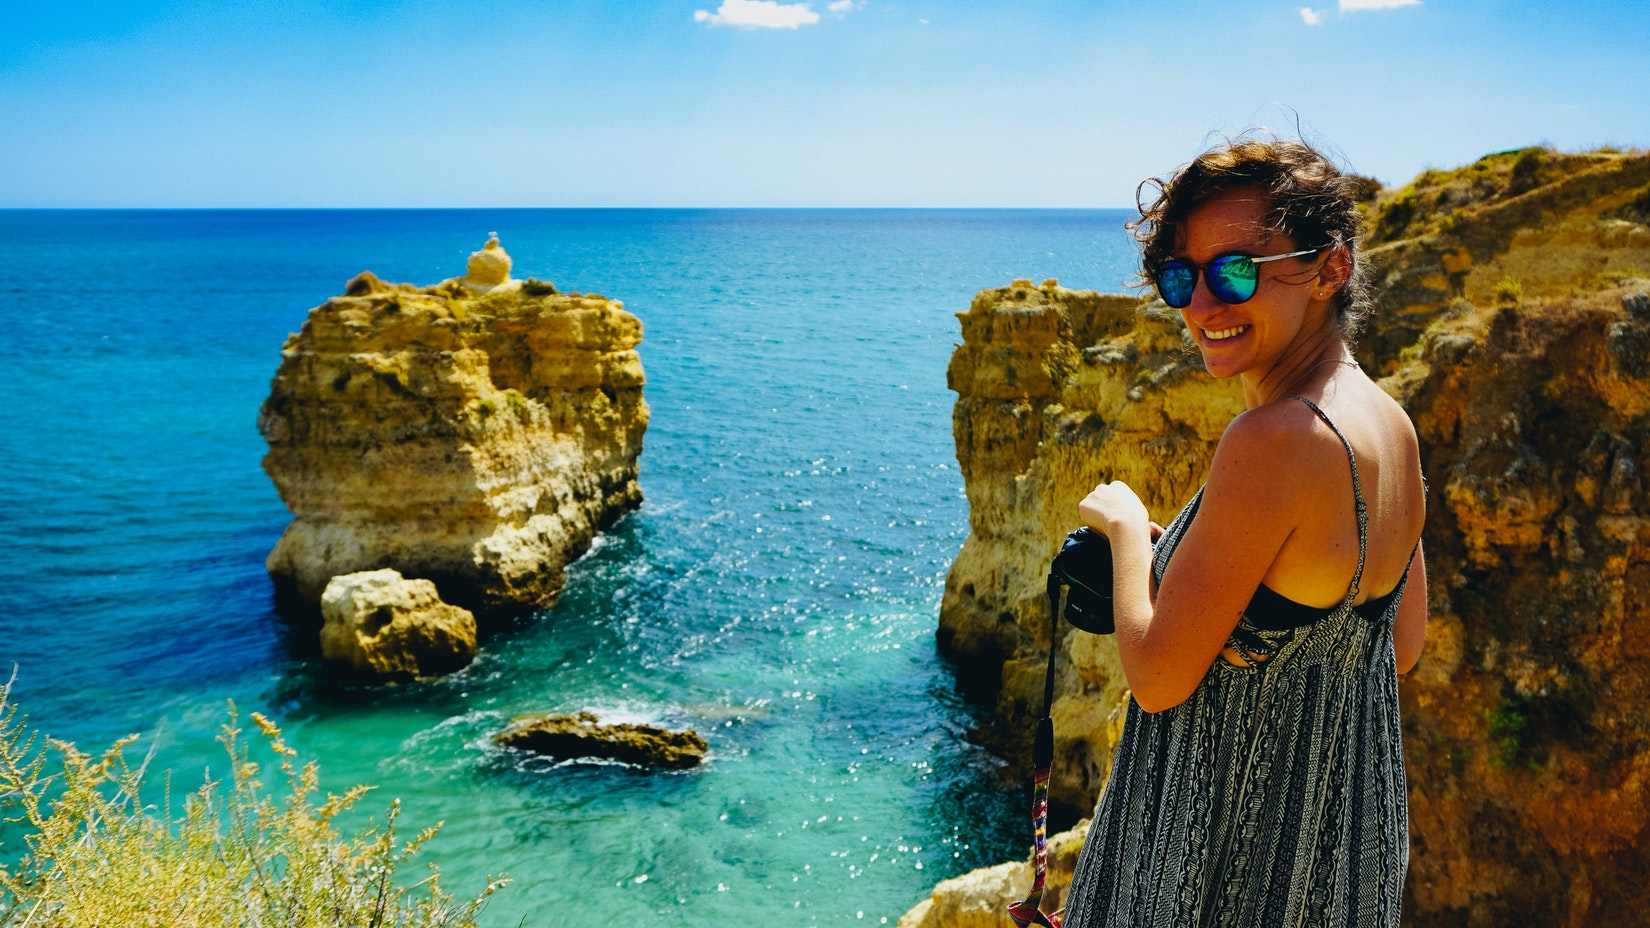 A girl with turquoise and blue waters at a sandy beach with rock formations in Portugal